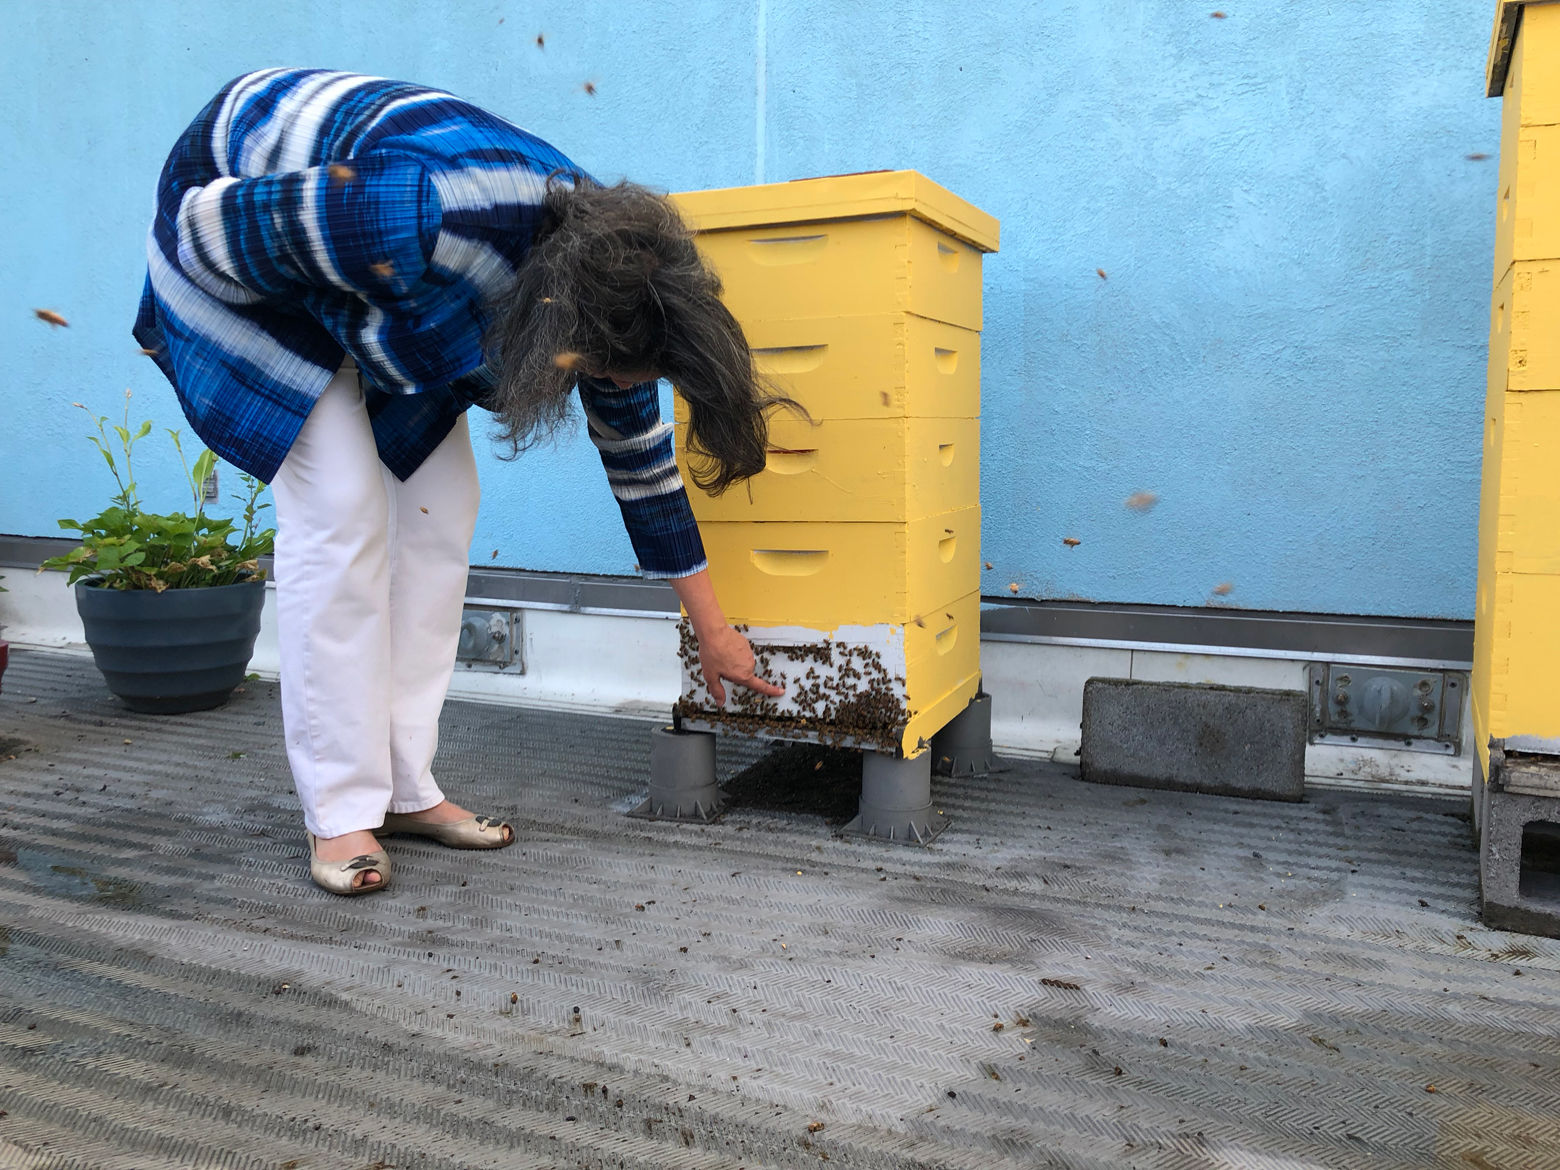 Toni Burnham, president of the D.C. Beekeepers Alliance, inspects a rooftop hive at the Fairmont Hotel. (WTOP/Dan Friedell)